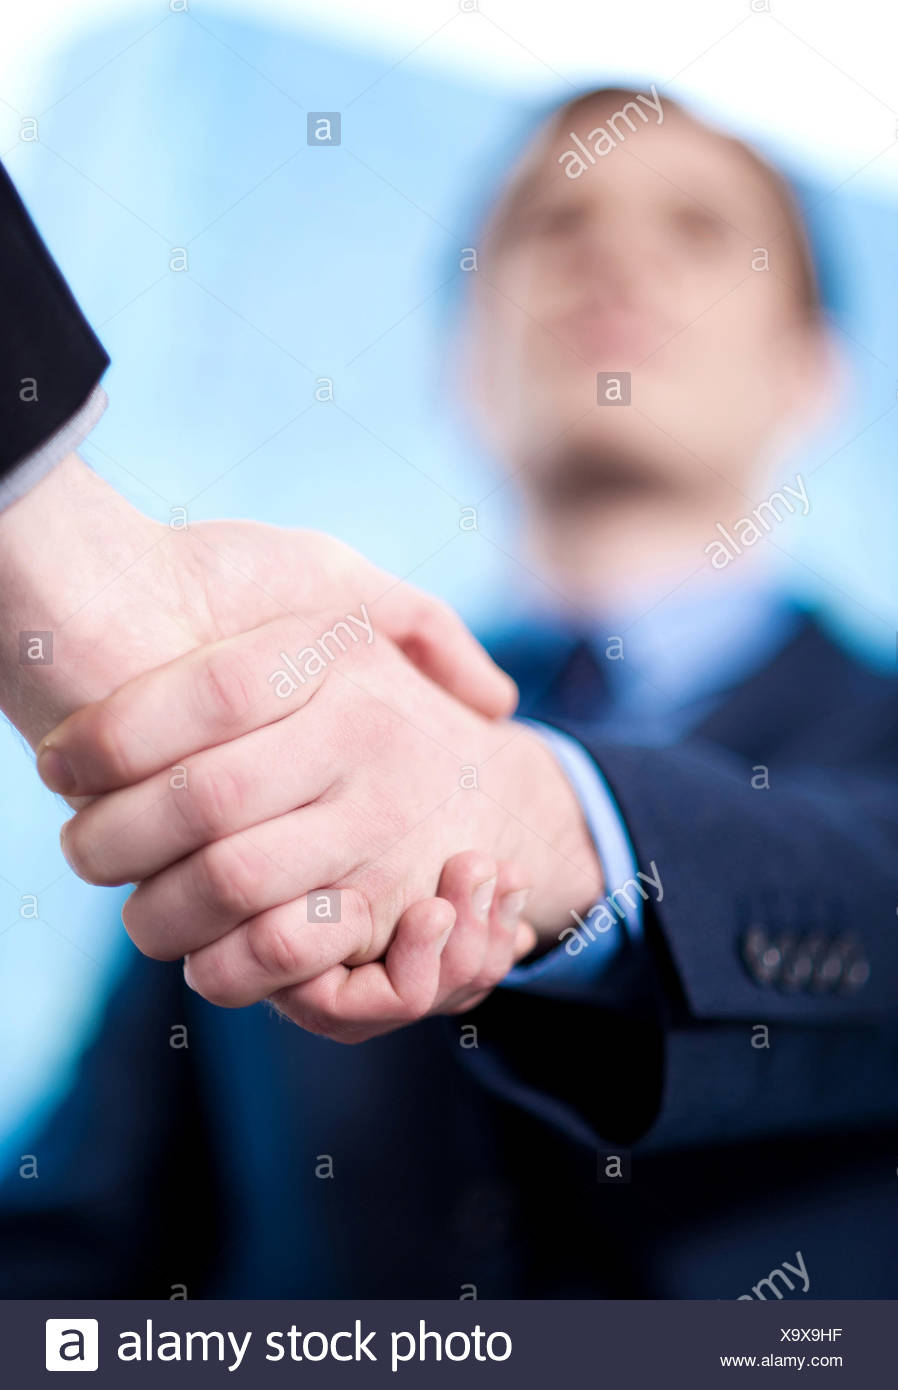 Business handshake among two corporates - Stock Image